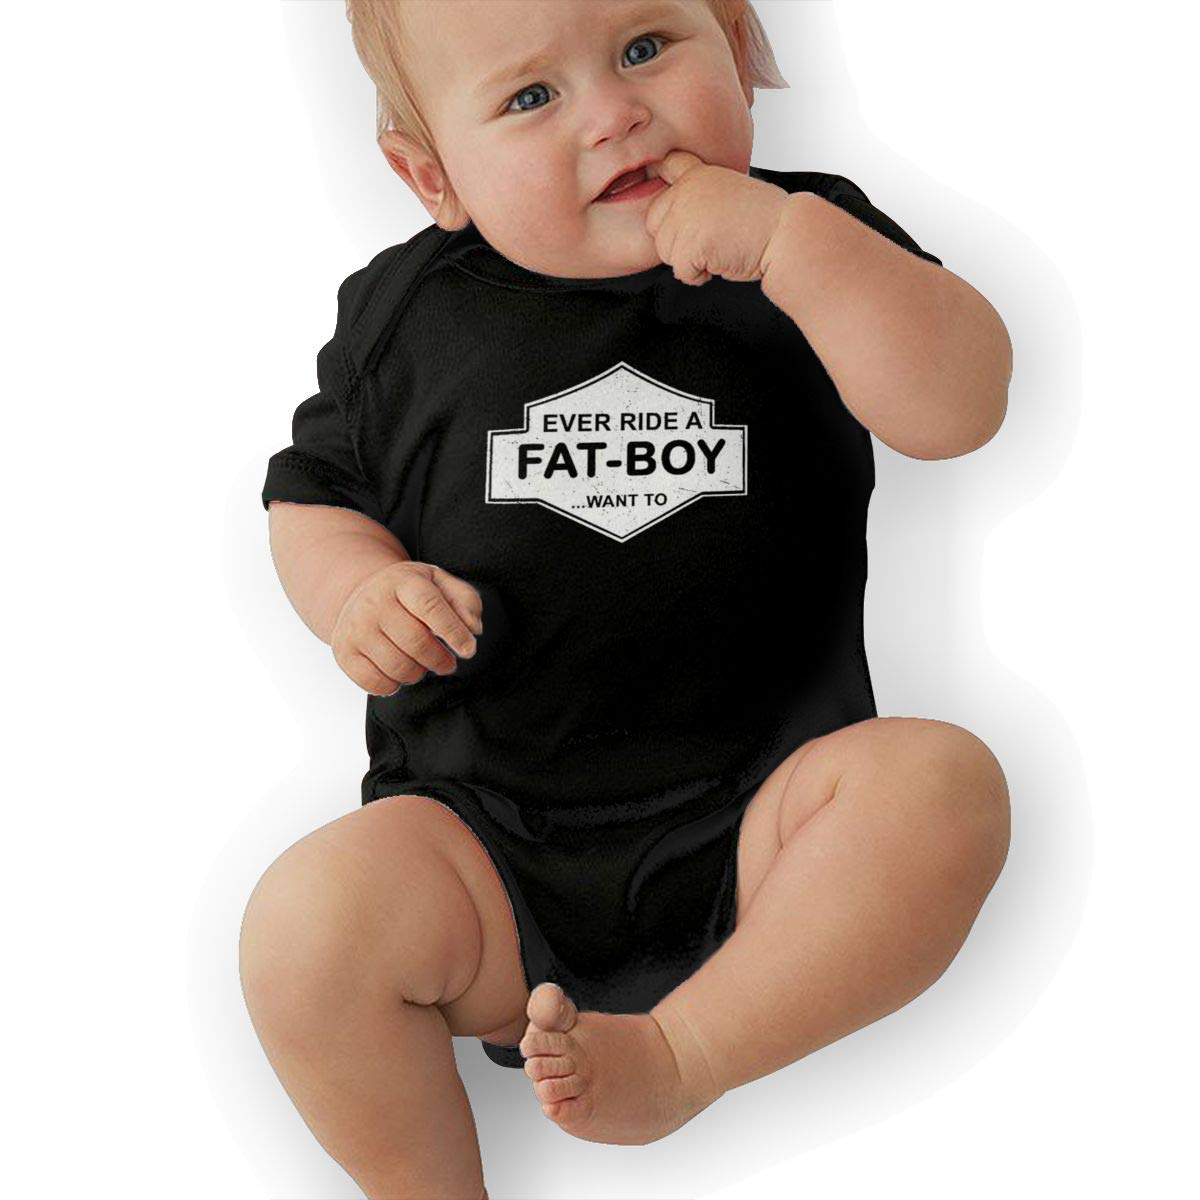 Baby Infant Short Sleeve Romper Ever-Ride-A-Fat-Boy-Want-to Black Bodysuit One-Piece Jumpsuit Outfit